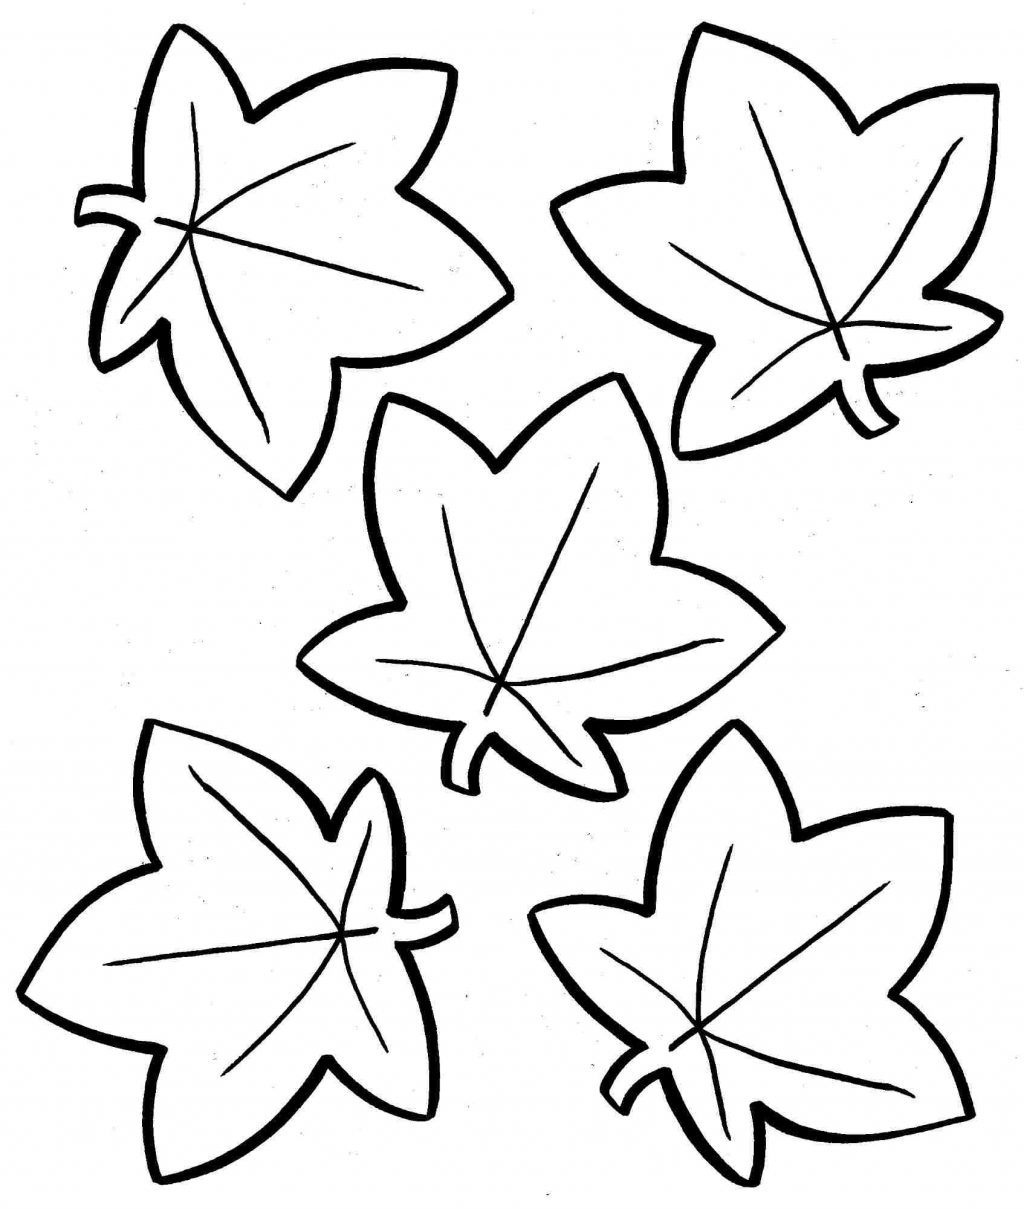 Coloring Pages ~ Coloring Pages Fall Leaves Printable Autumn Page Az - Free Printable Pictures Of Autumn Leaves